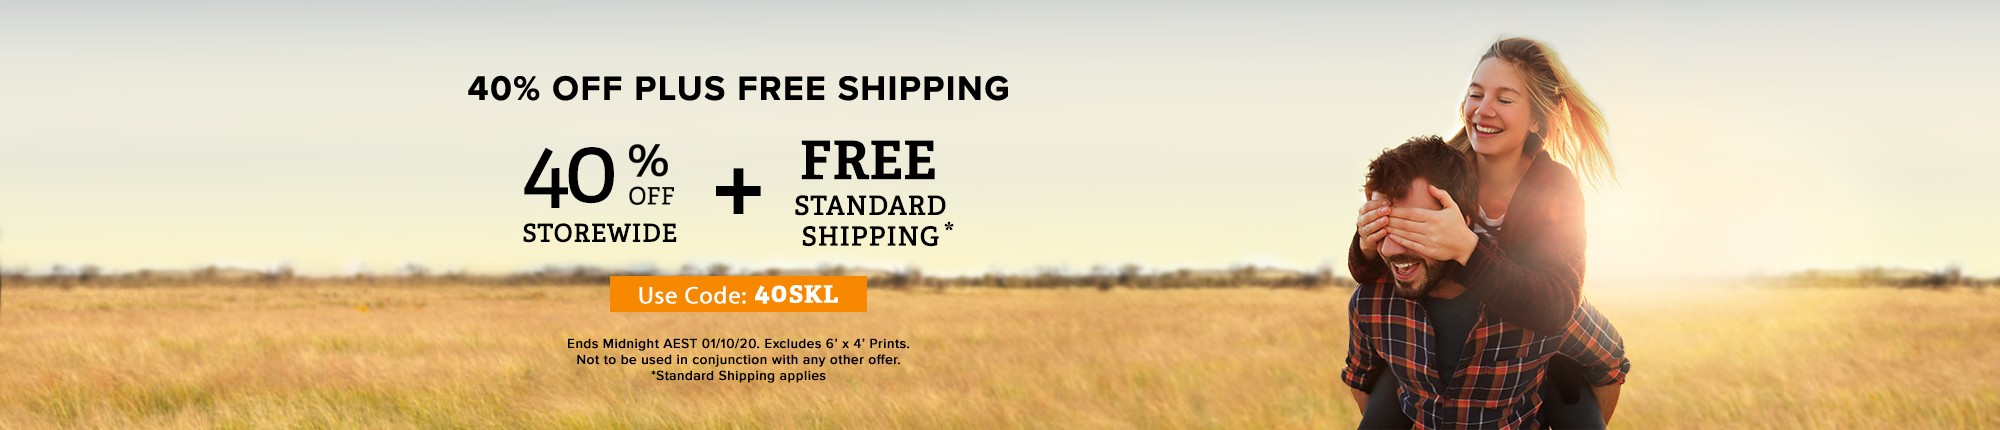 40% Off Plus Free Shipping